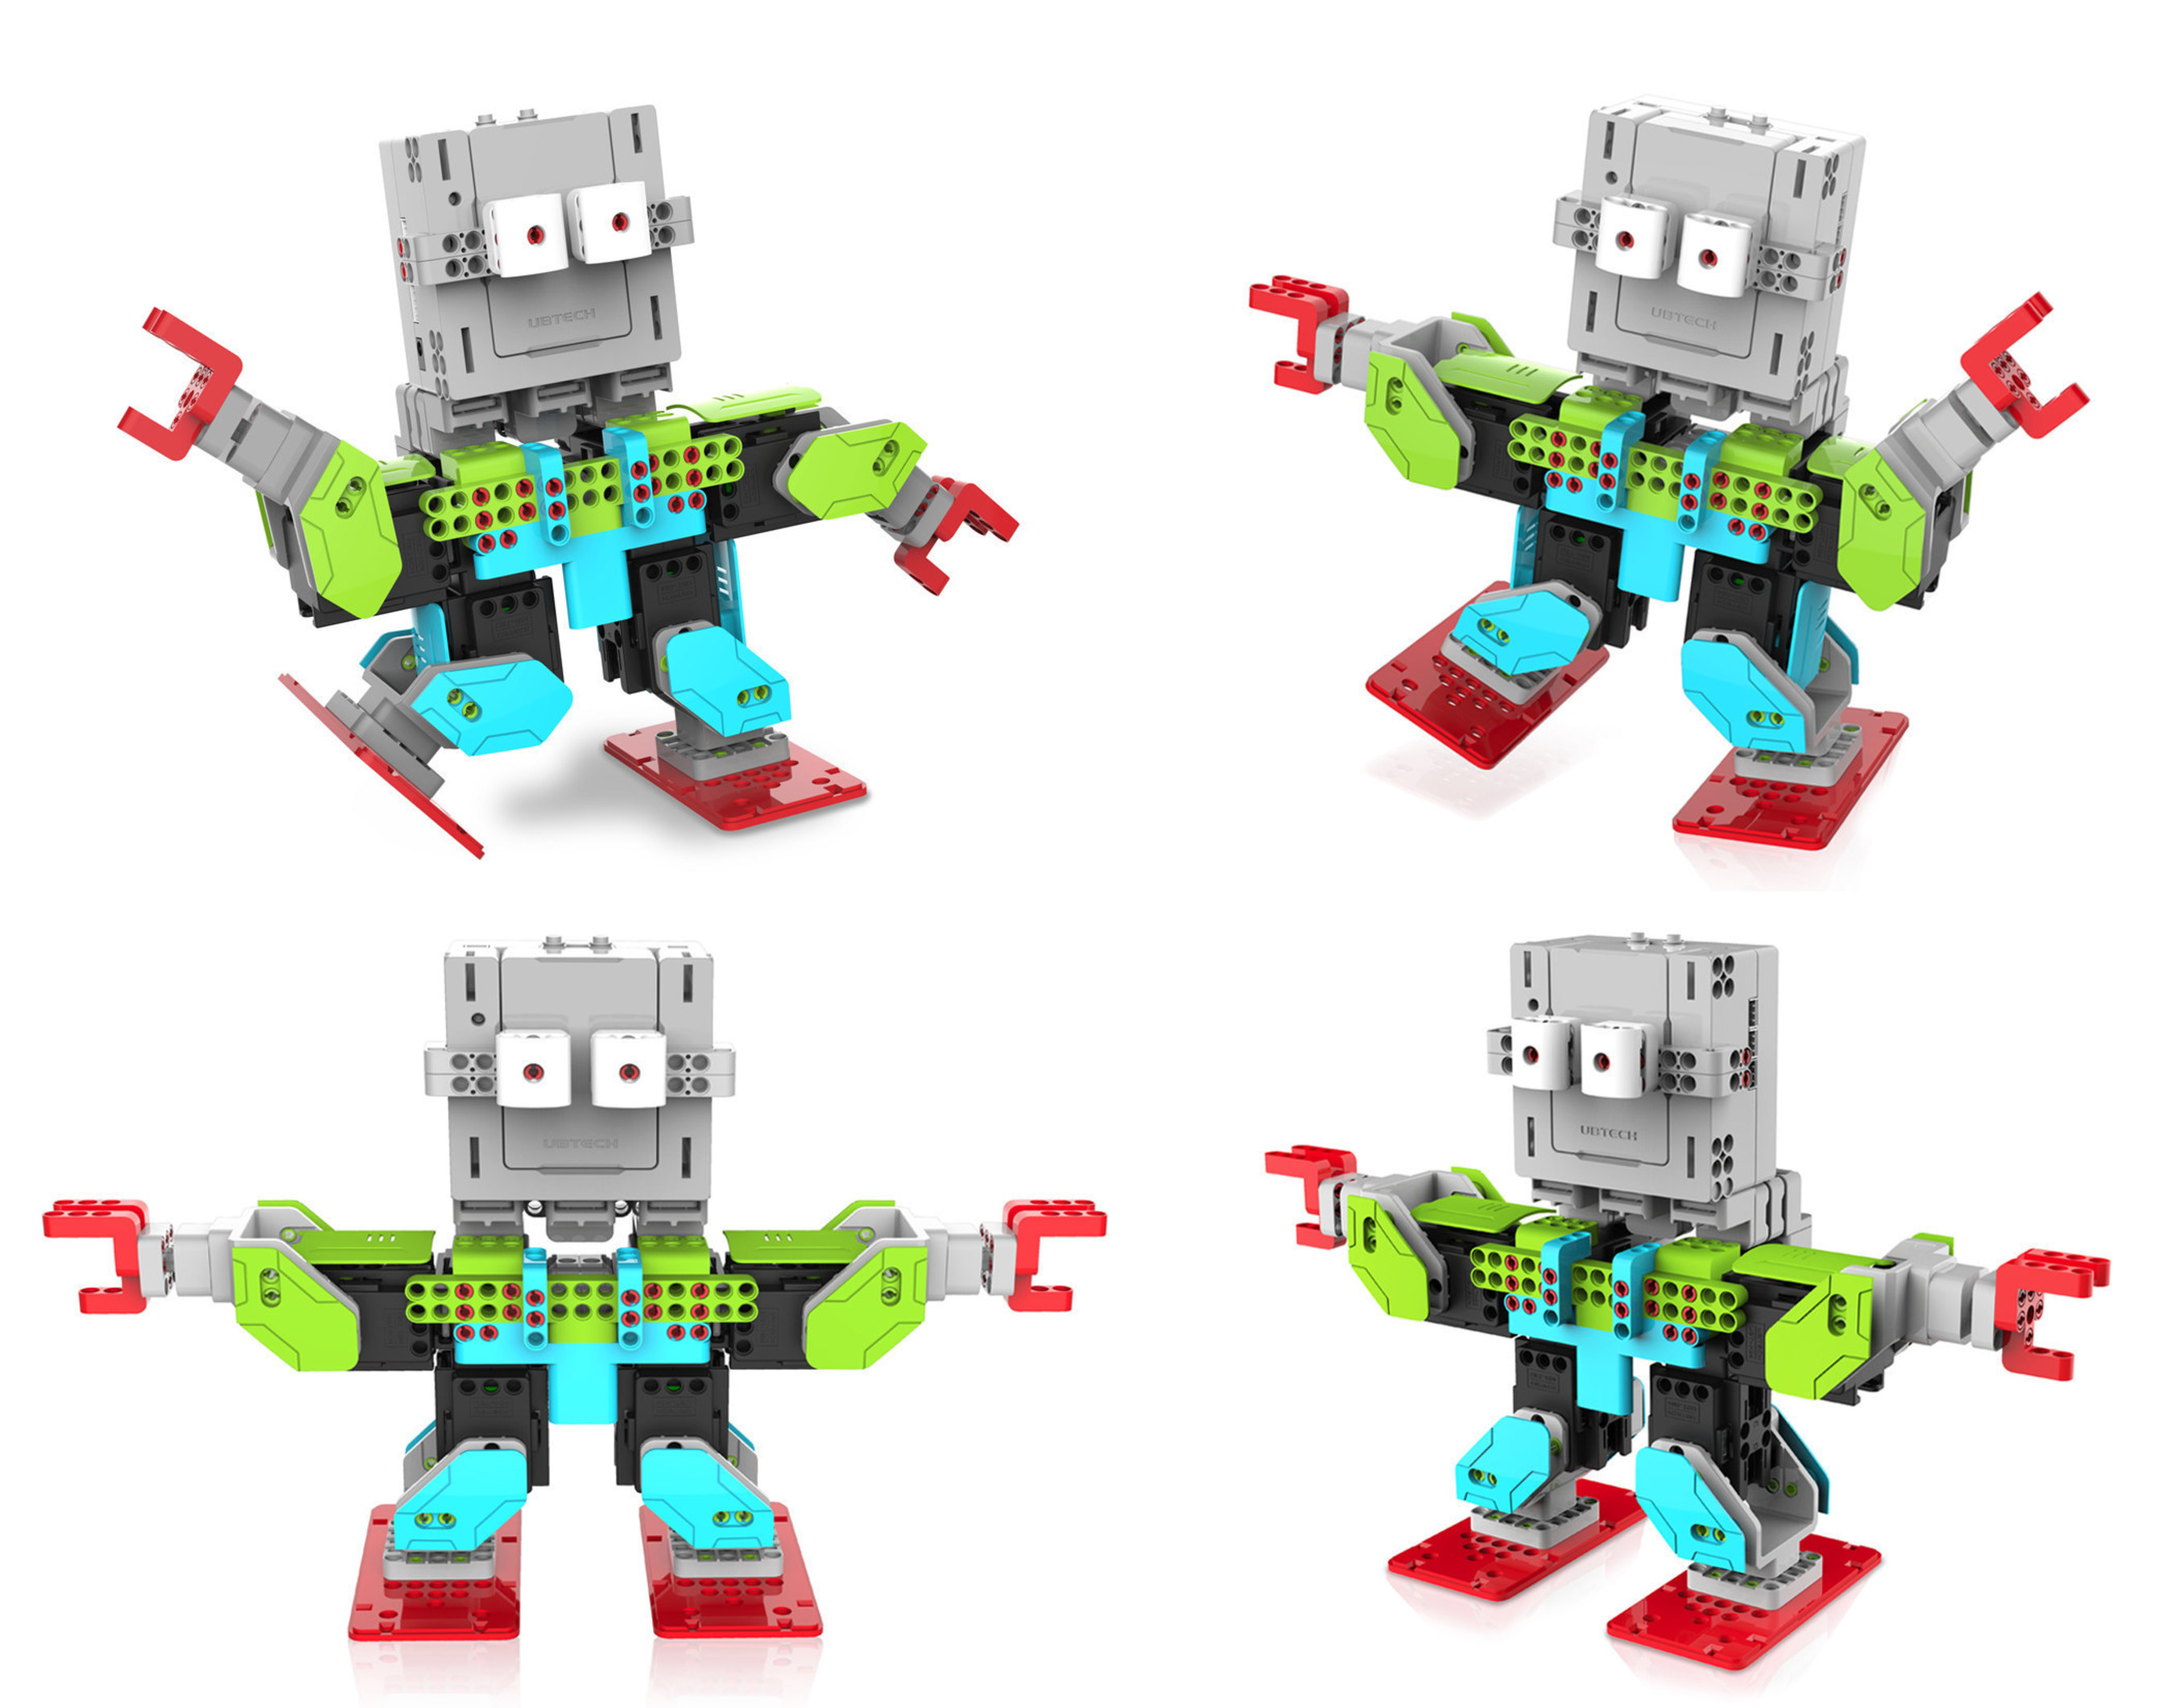 JIMU Robot, the World's First Buildable, Programmable and Shareable Robotic Building Block Line Available World-wide Today